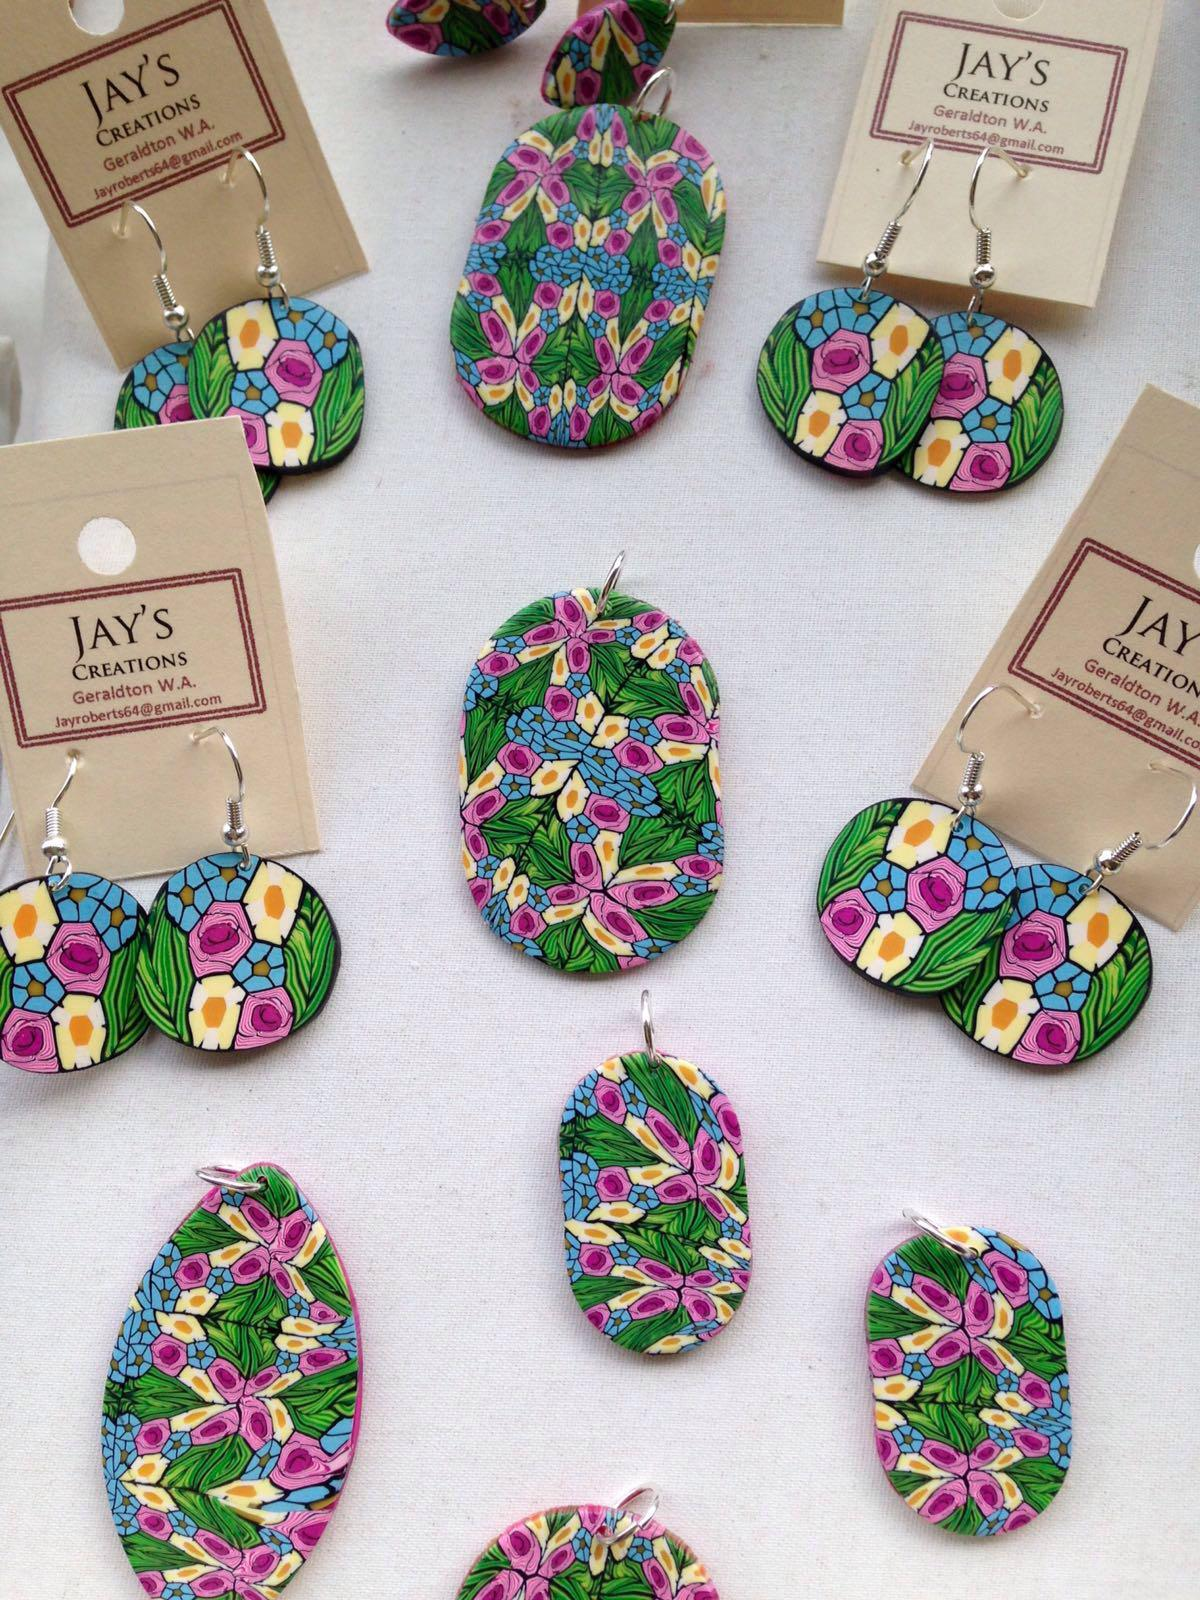 Jay's Creations polymer clay jewellery